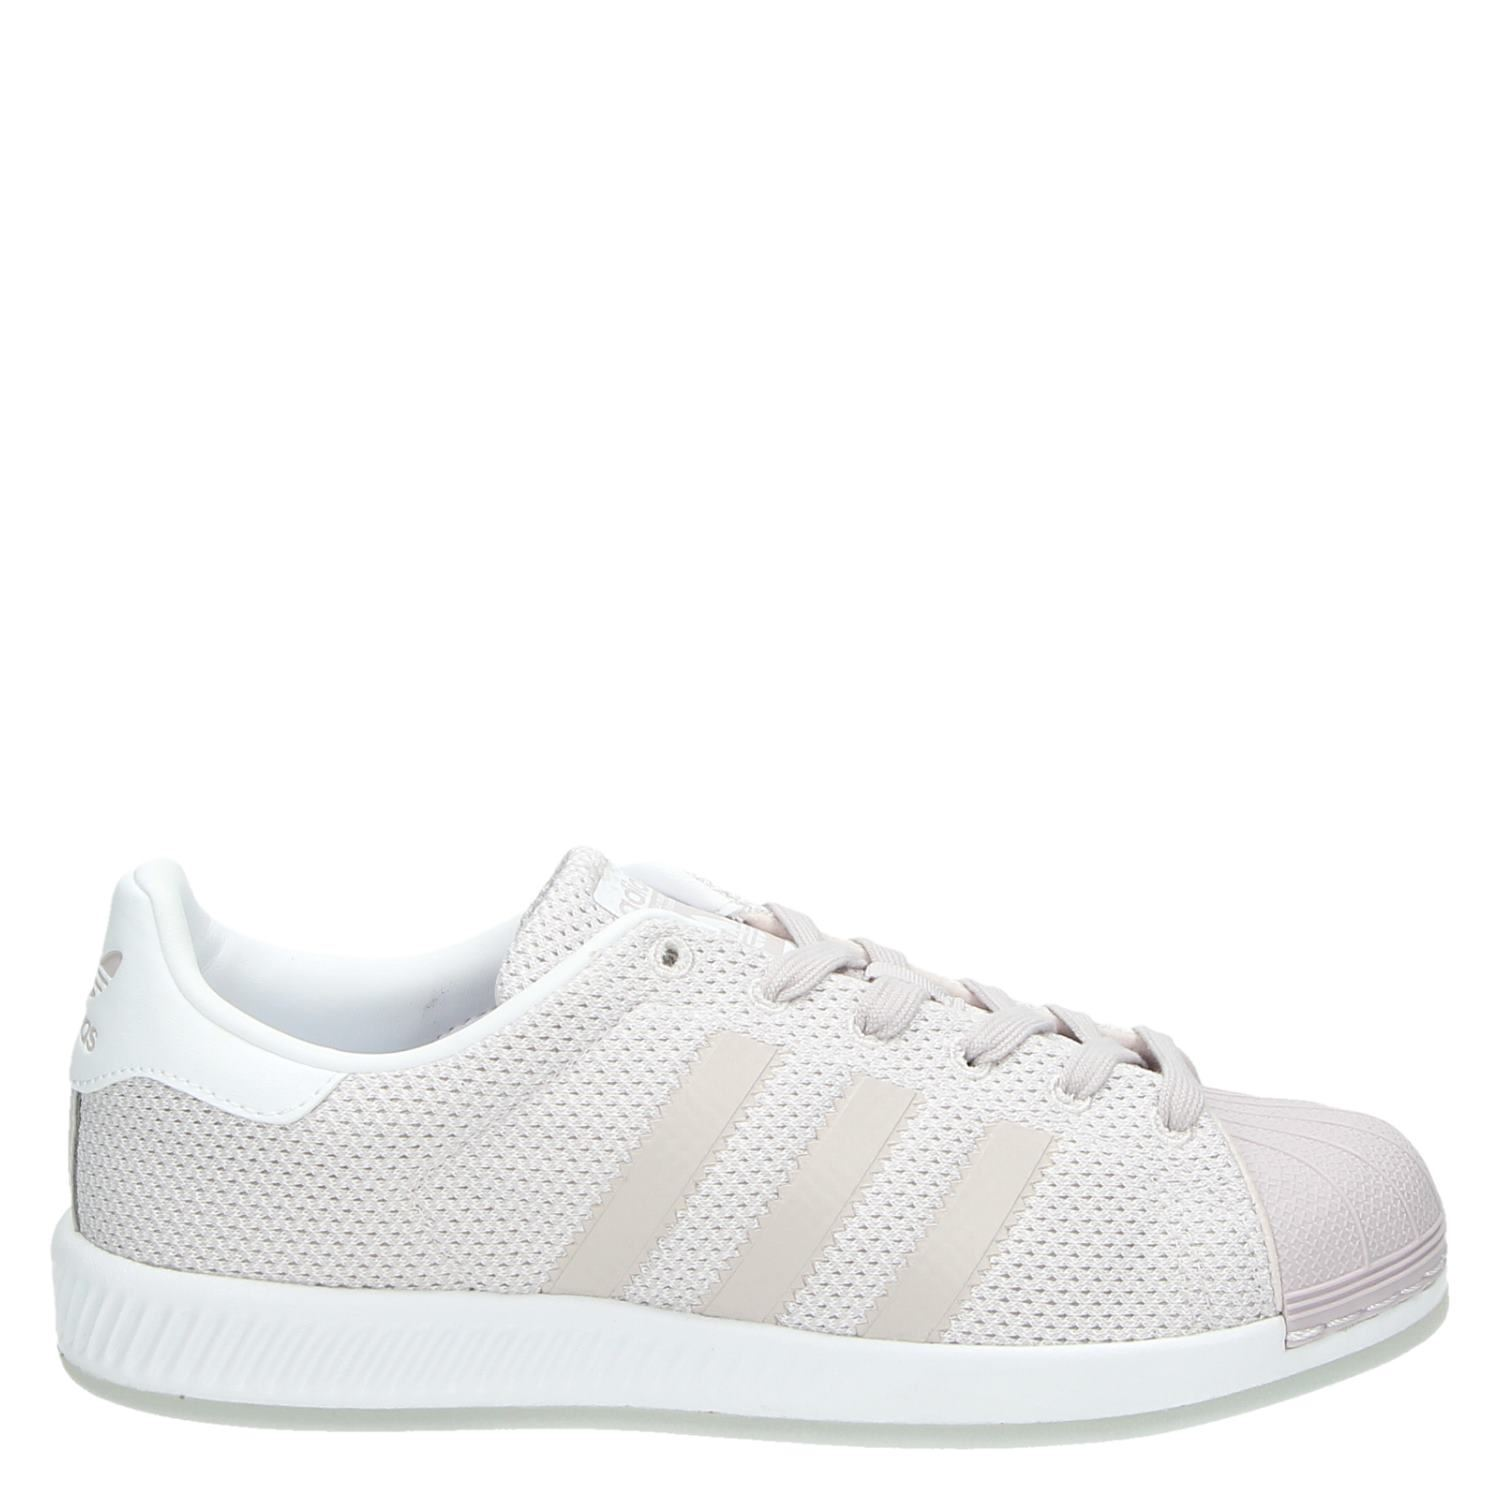 1ee854a6368 Adidas Superstar Bounce dames lage sneakers roze